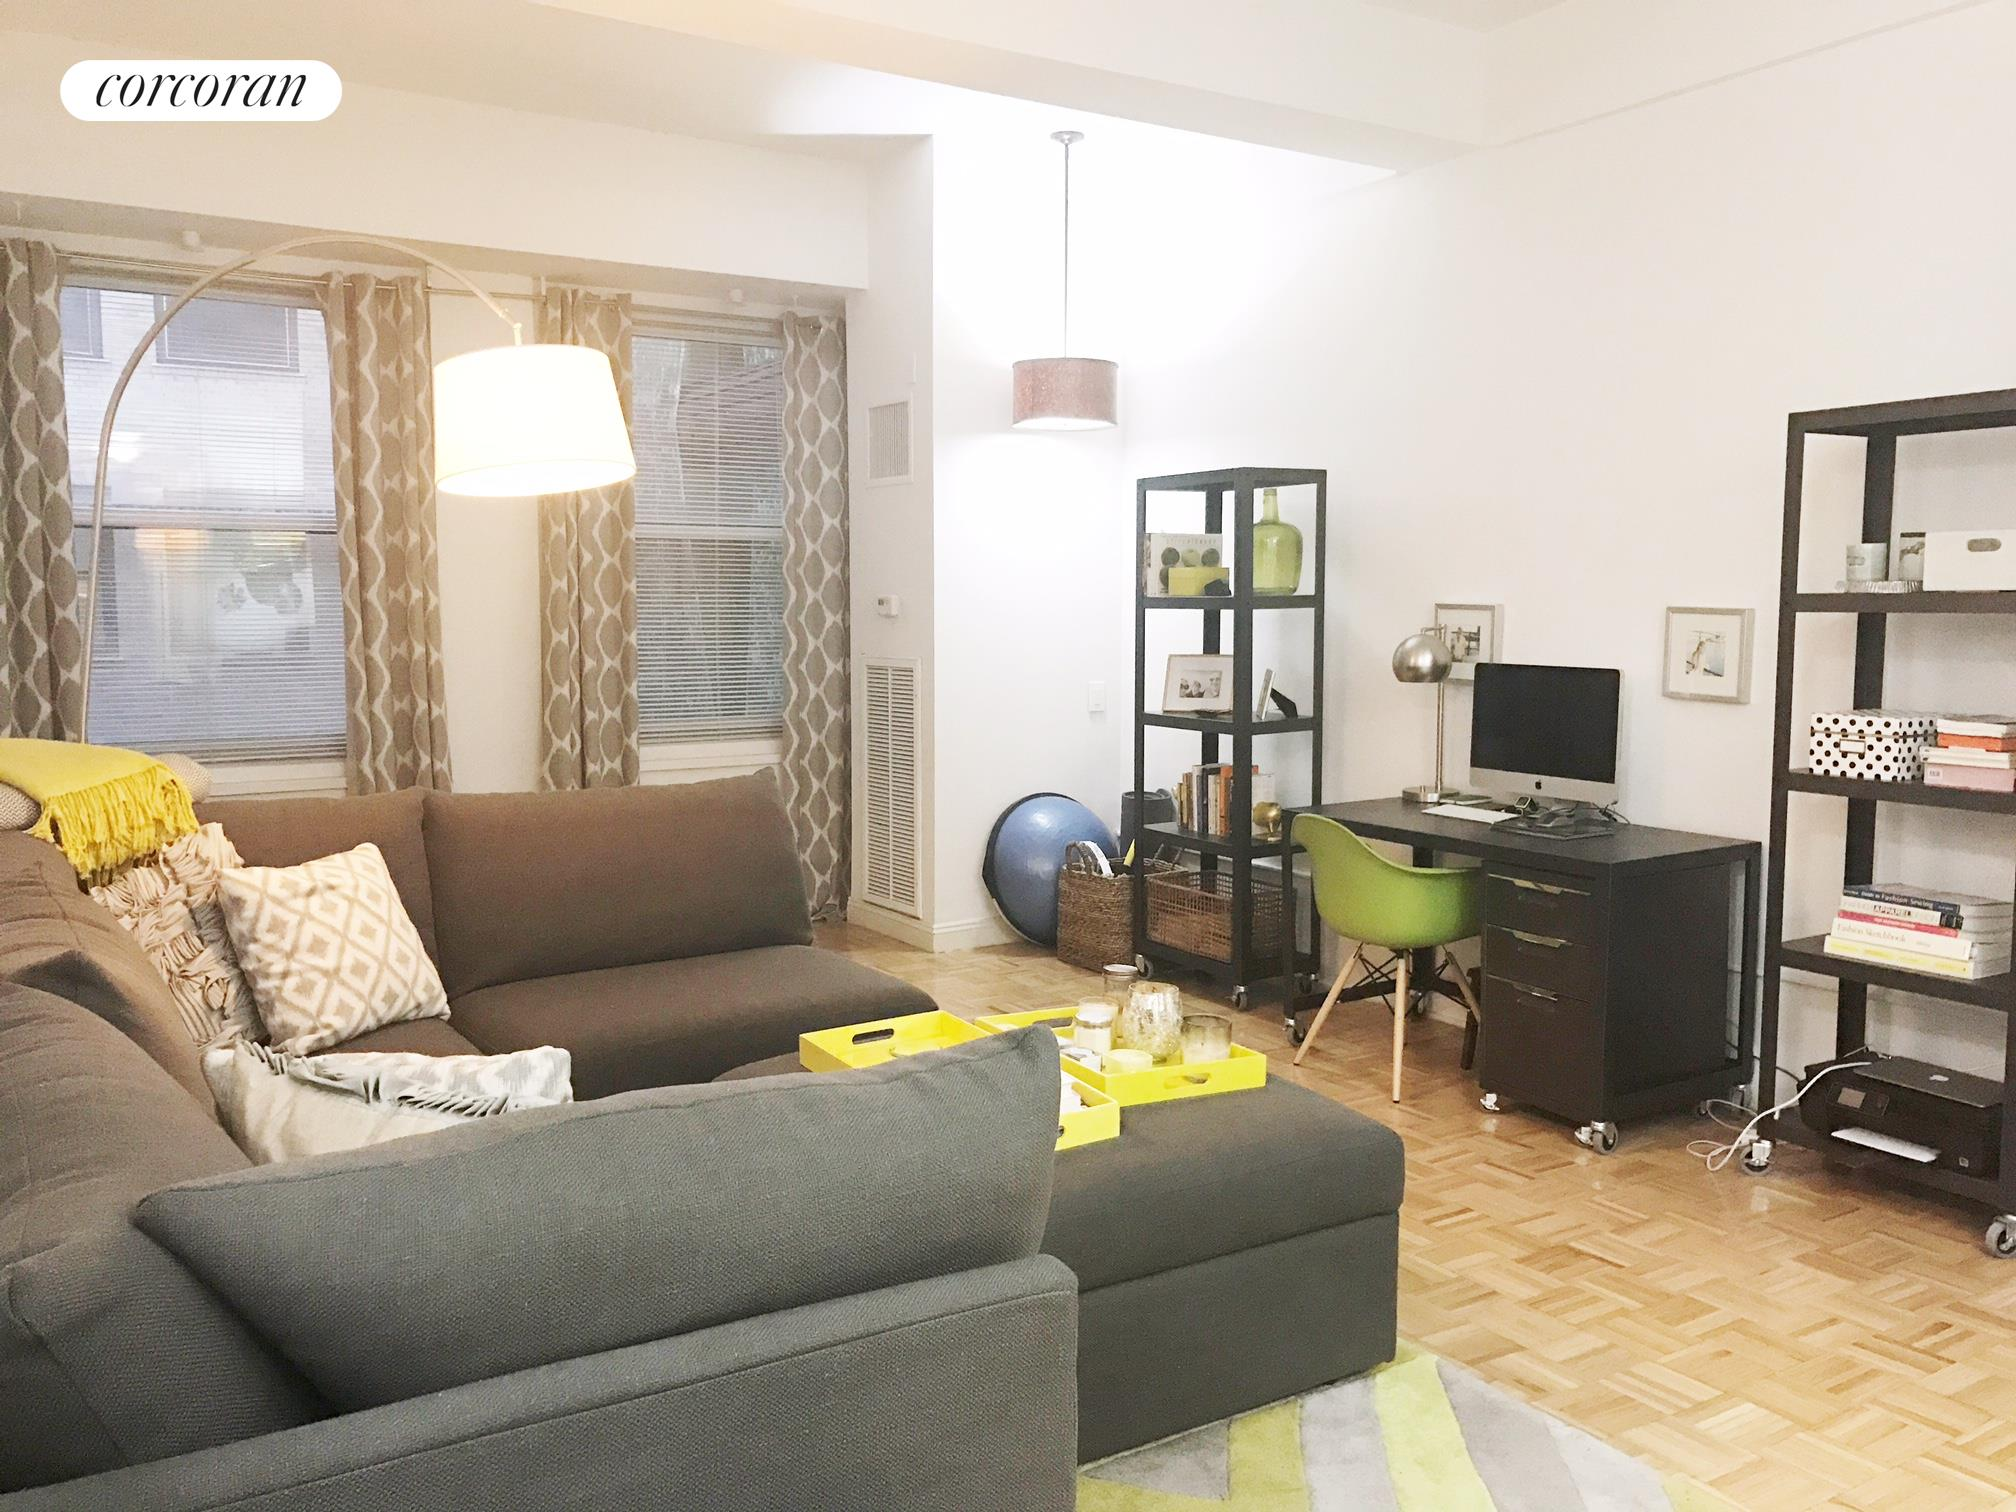 88 Greenwich Street, 526, Living room with Bed, next to windows